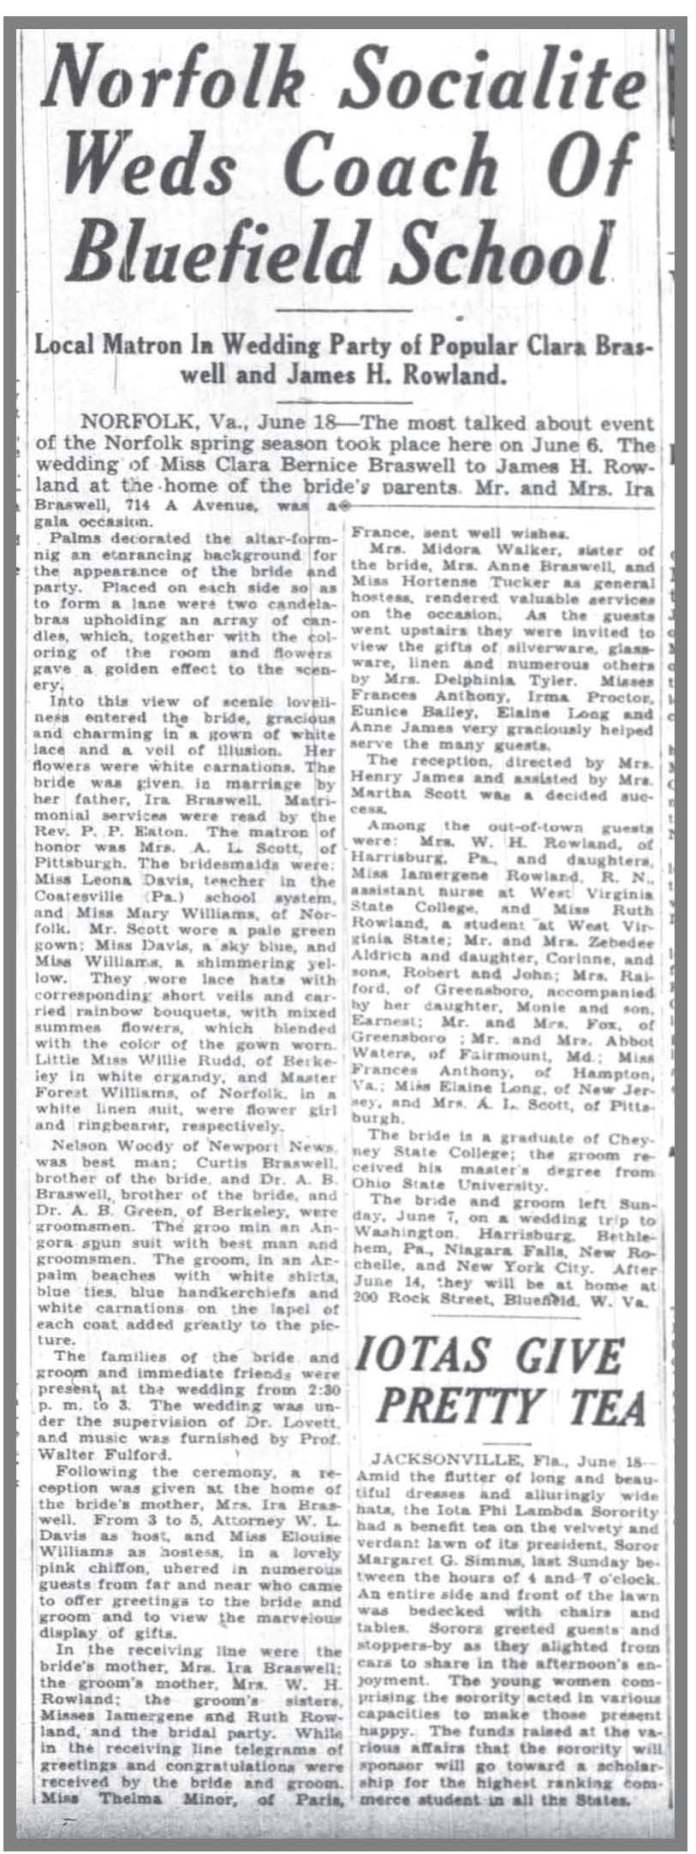 Pittsburgh Courier 6 20 1936 Clara Braswell wedding